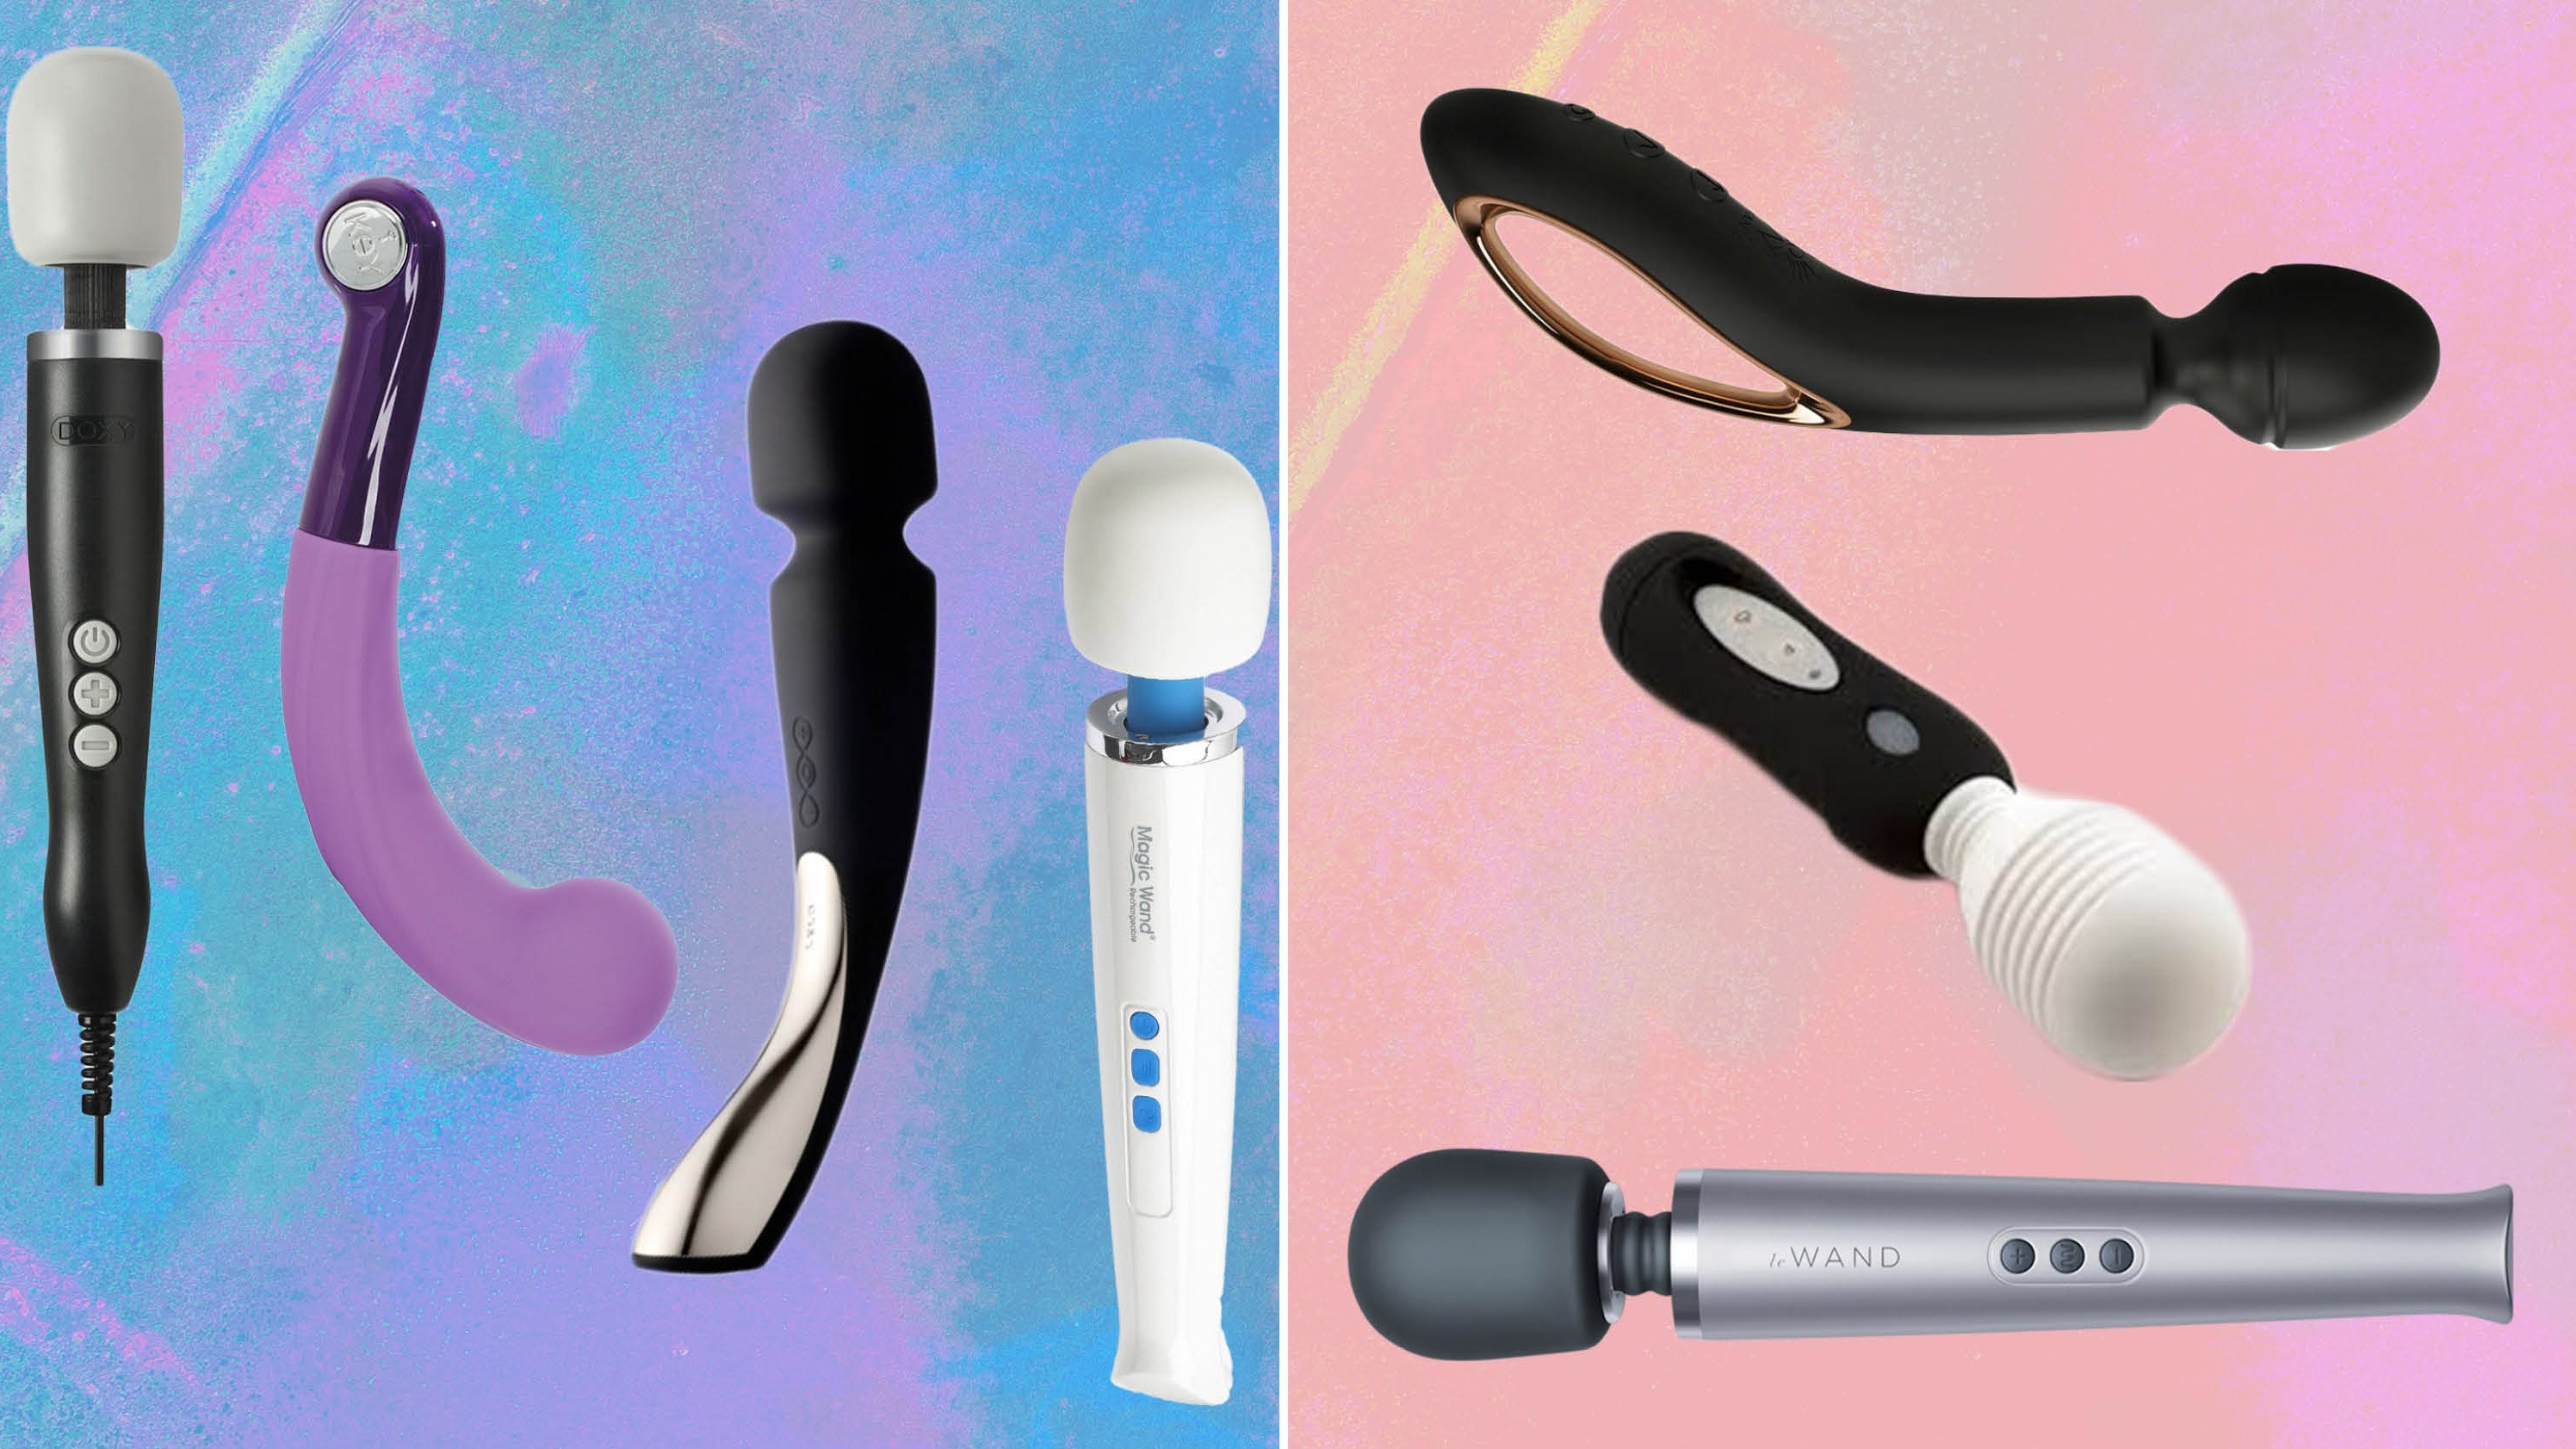 29 of the Most Powerful Wand Vibrators You Can Buy Online